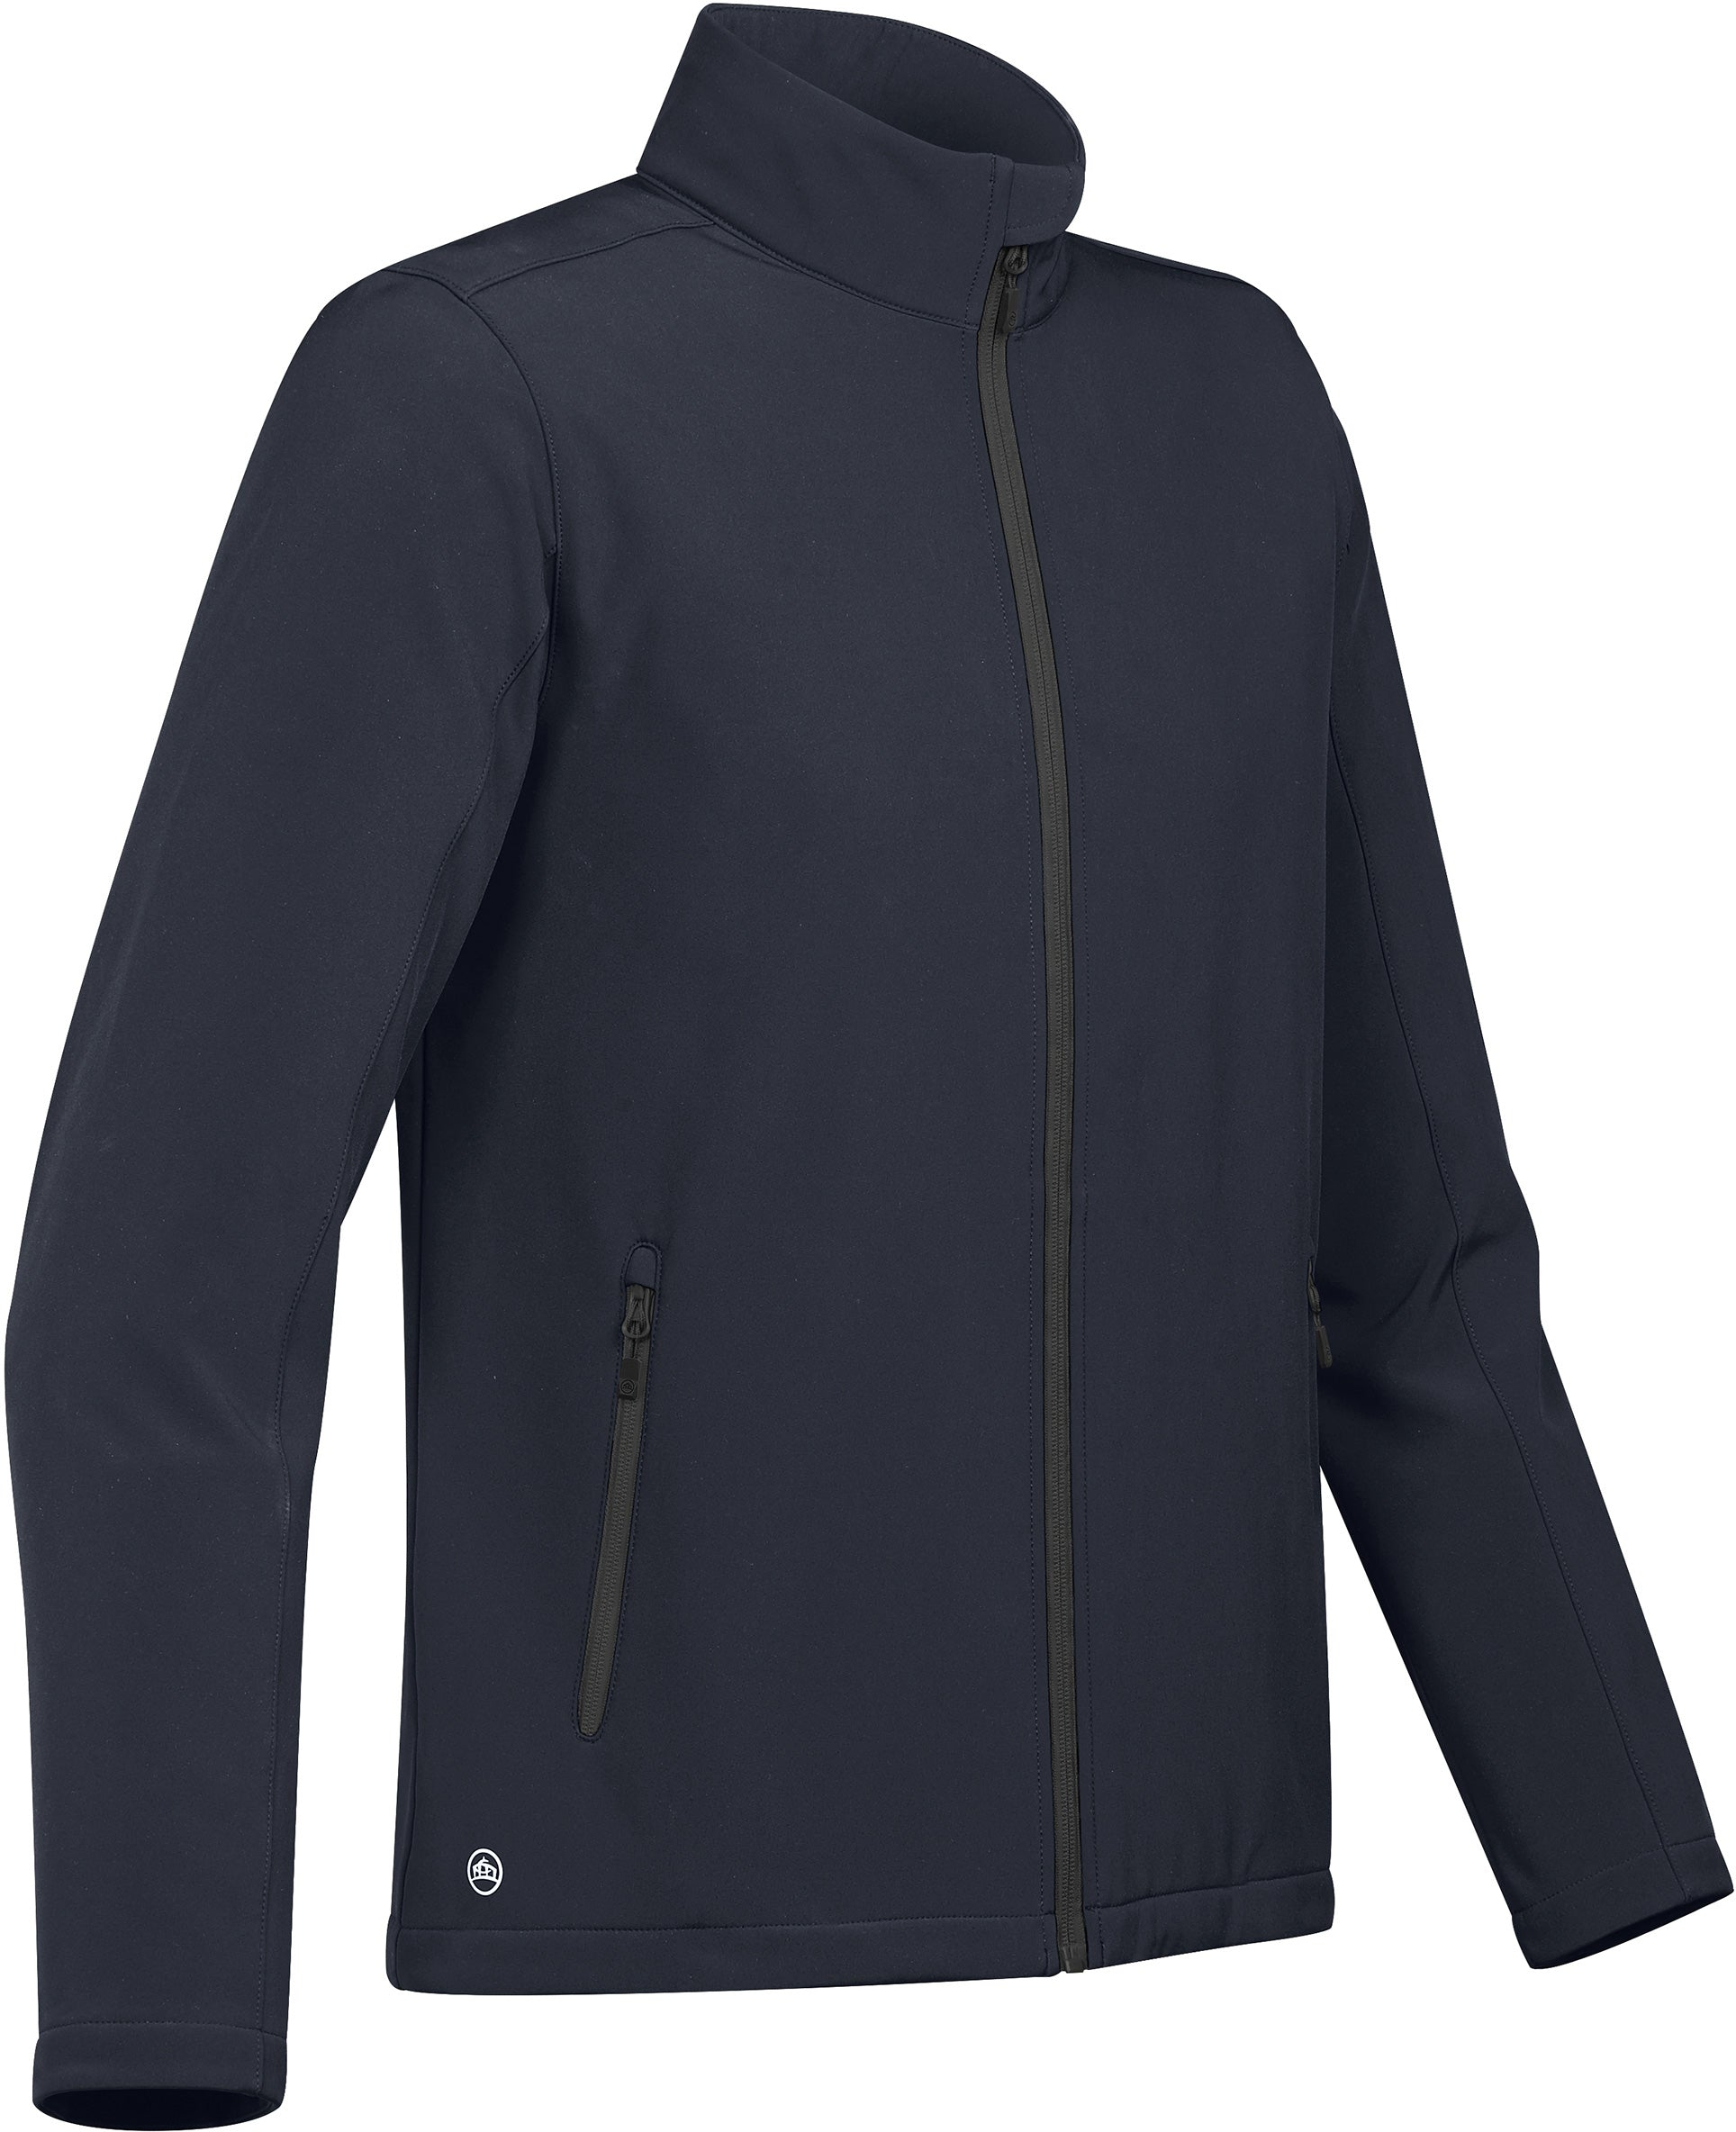 STORMTECH YOUTH ORBITER SOFT SHELL JACKET